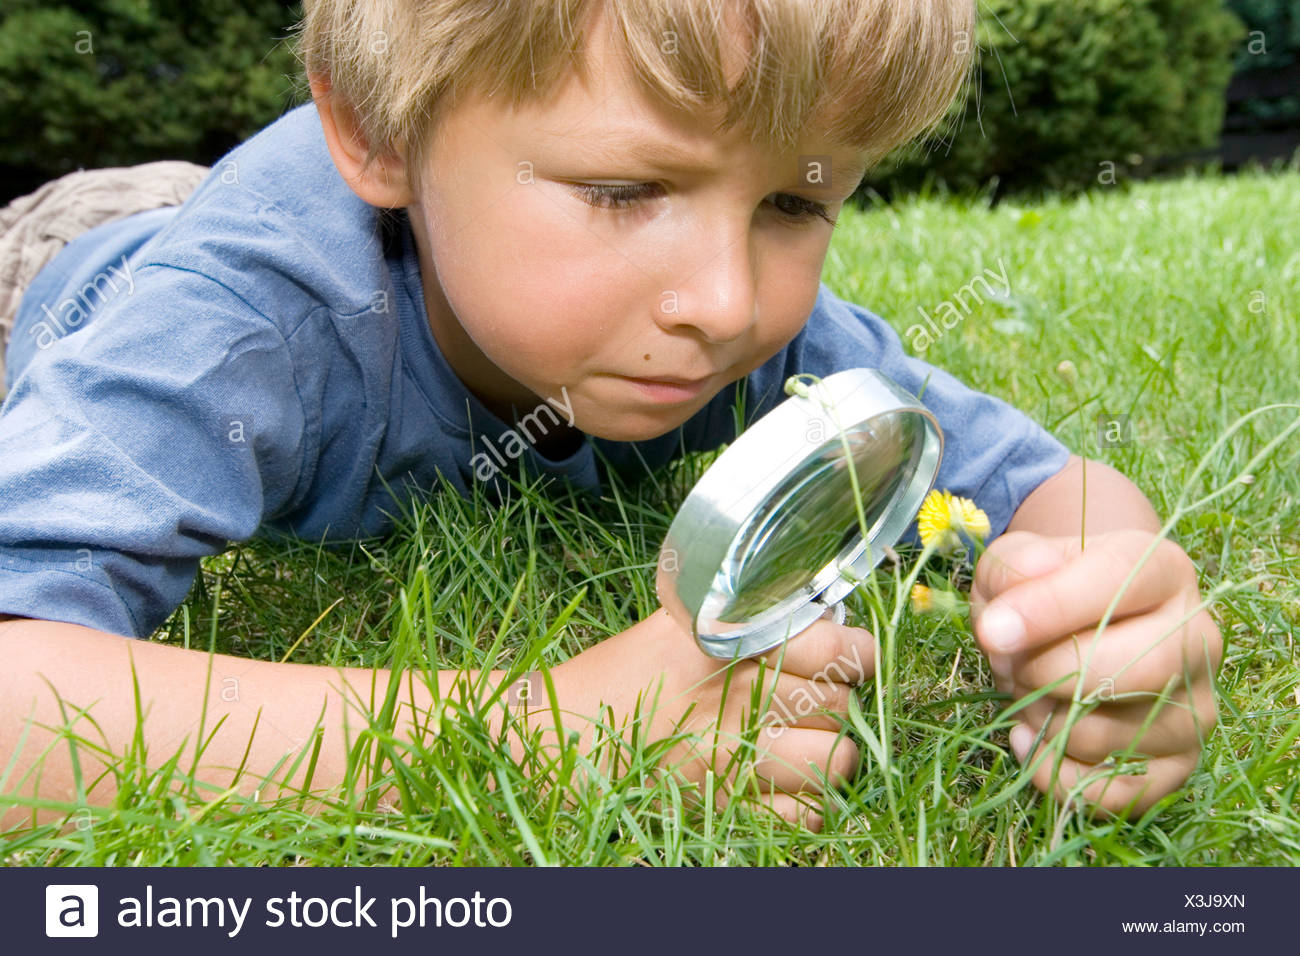 Boy examining a flower with a magnifying glass - Stock Image